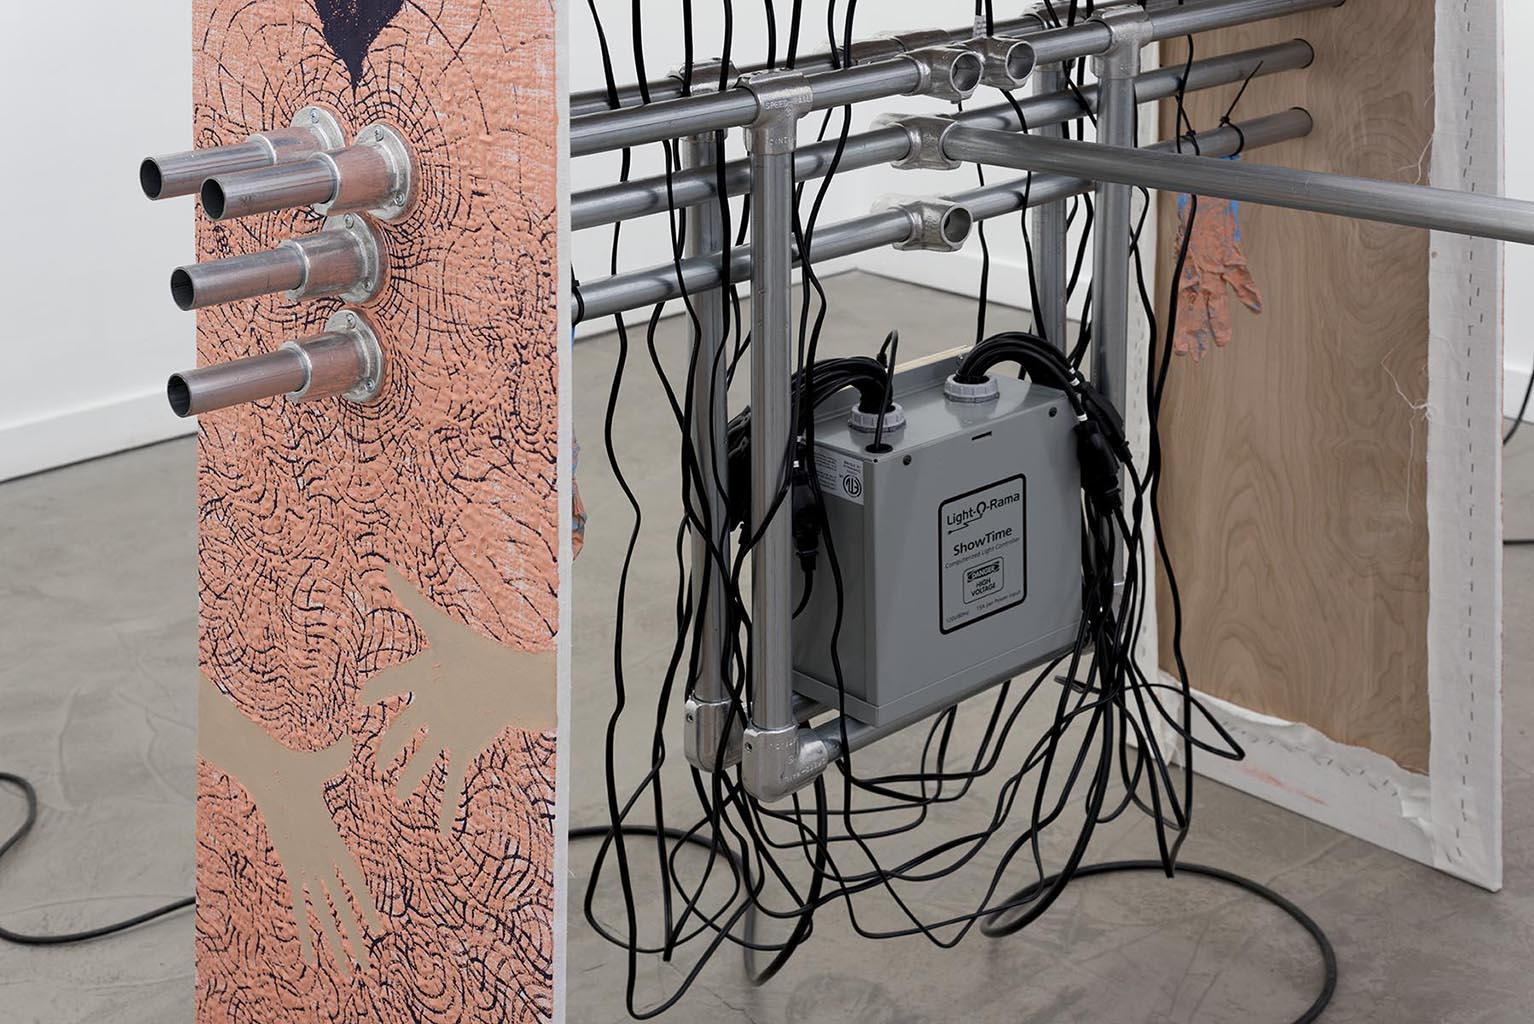 Hot Box Kid(Detail Shot), 2015, Cardboard, tape, acrylic, bleached linen, light bulbs, nitrile gloves, abraded golf balls, chain link fence post, aluminum fittings, door stoppers